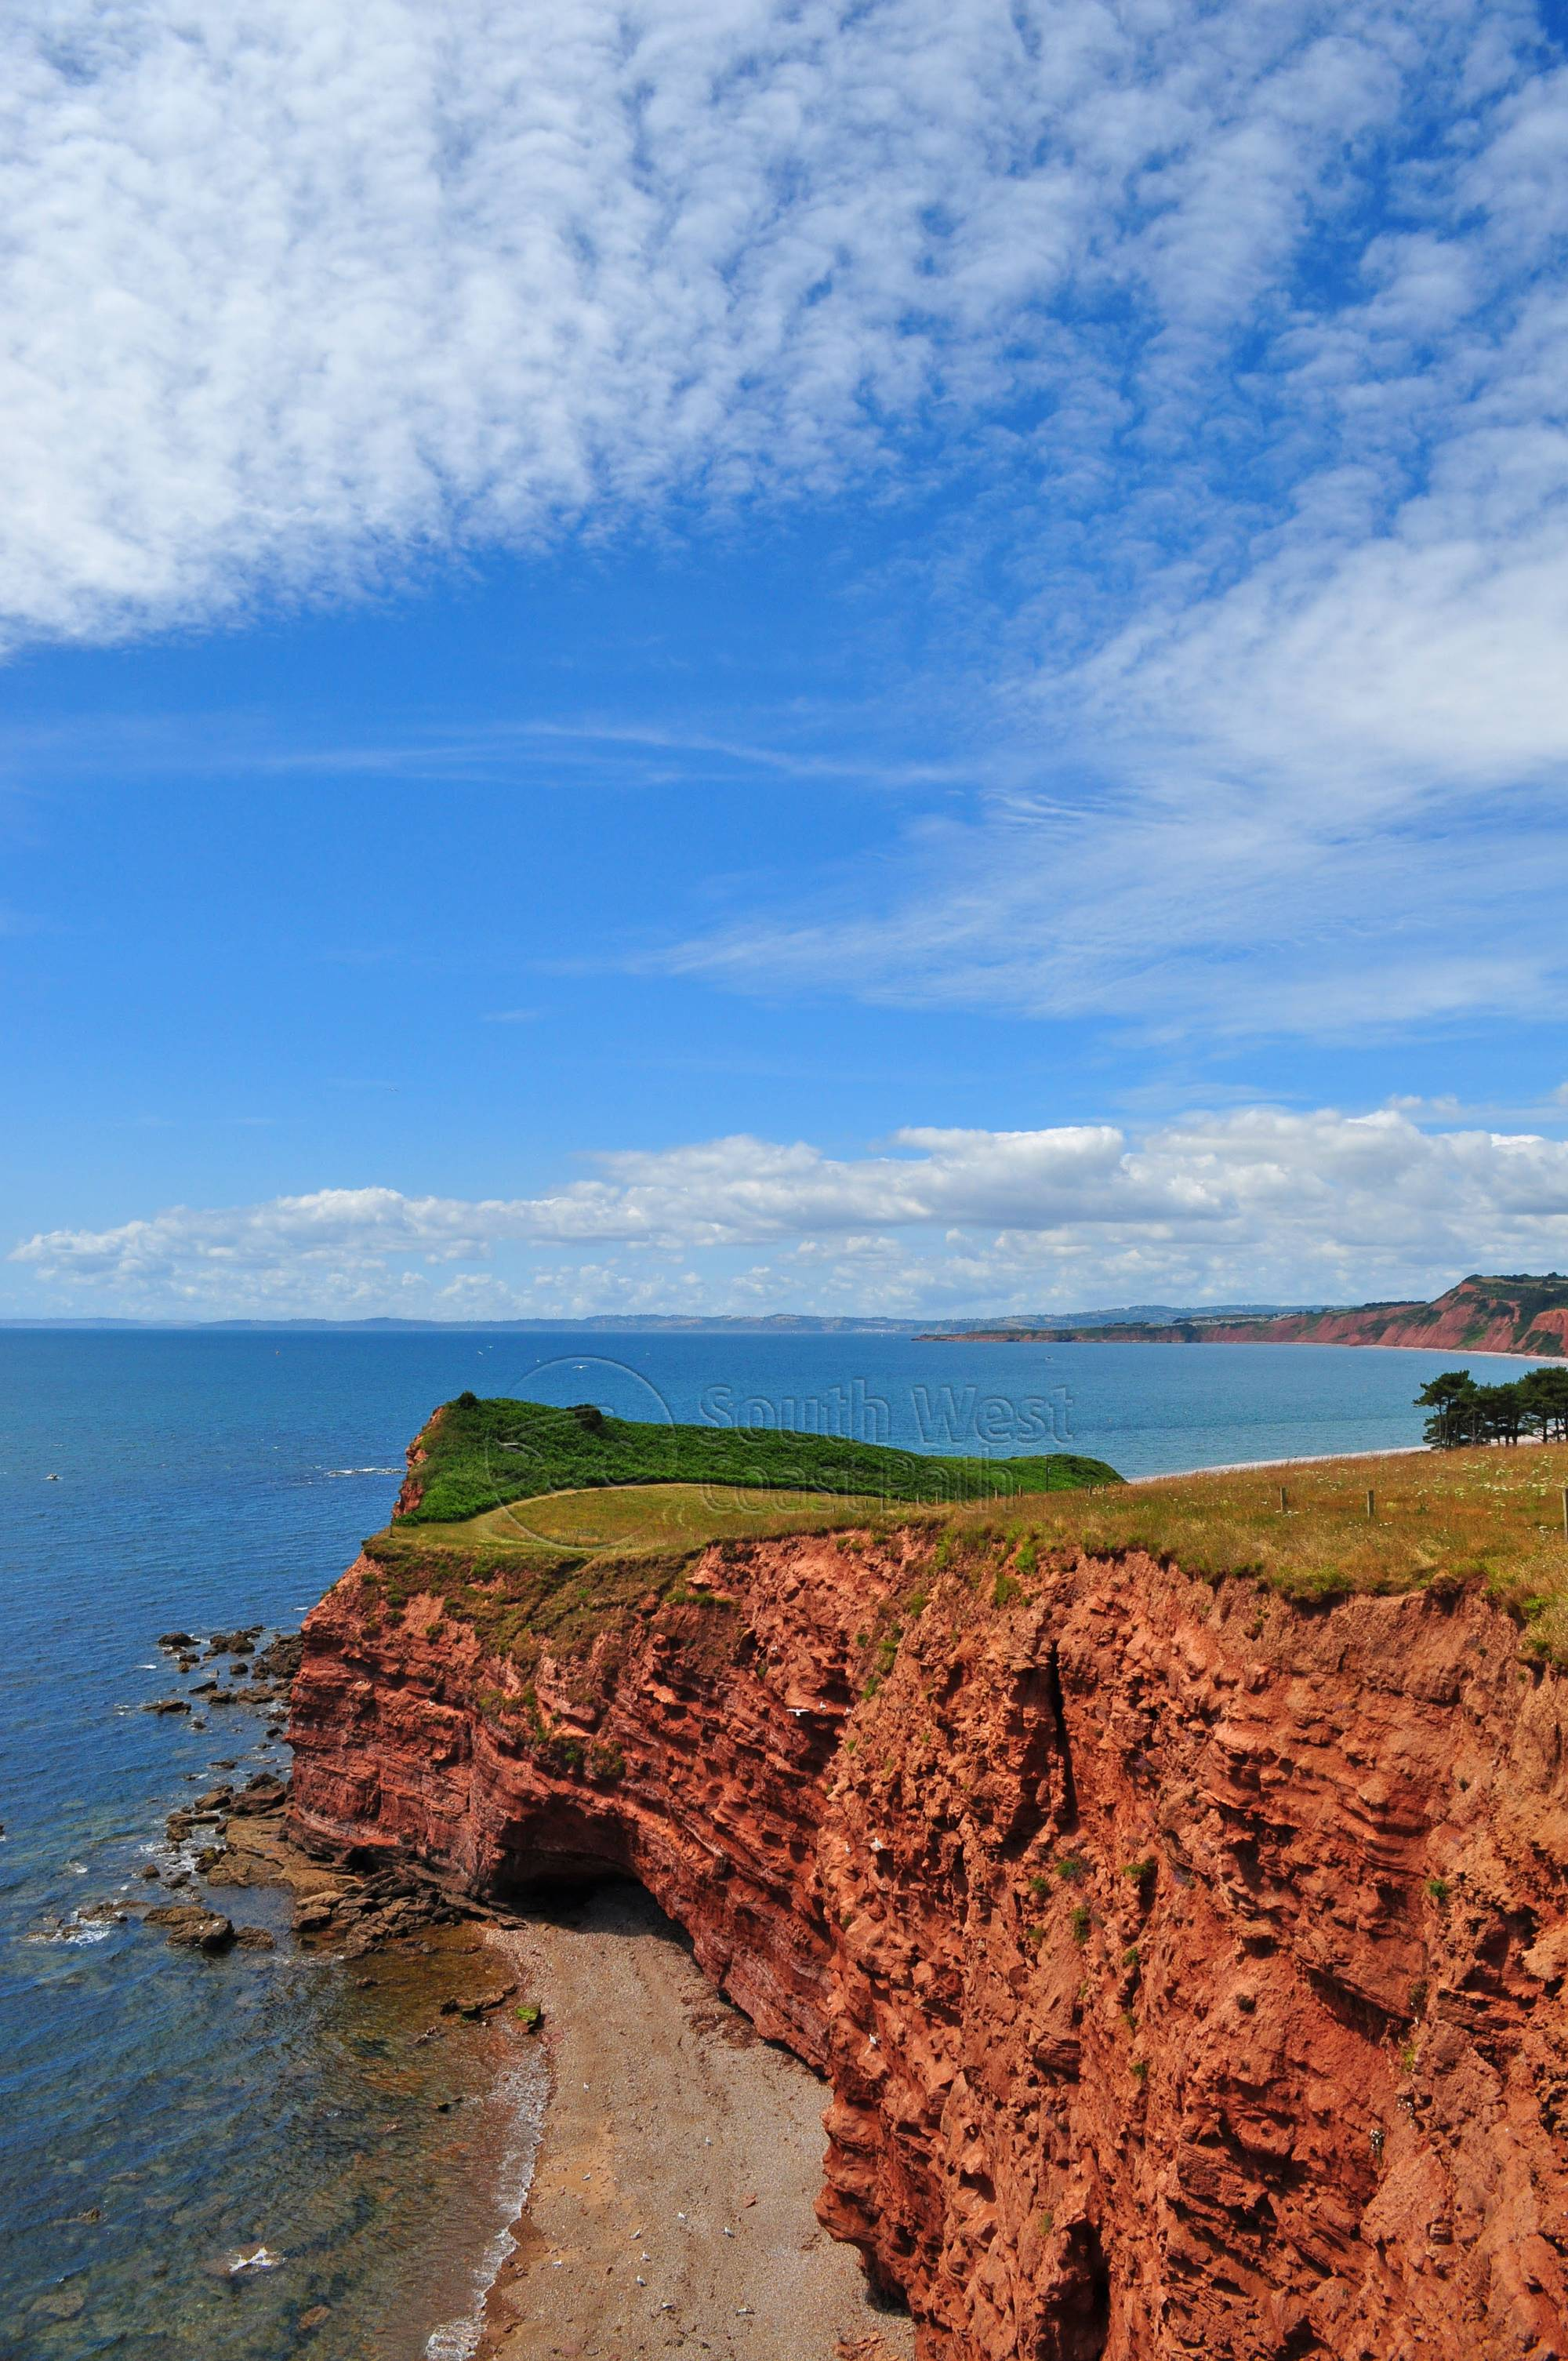 Bed And Breakfast Budleigh Salterton Budleigh Salterton To White Bridge Walk South West Coast Path